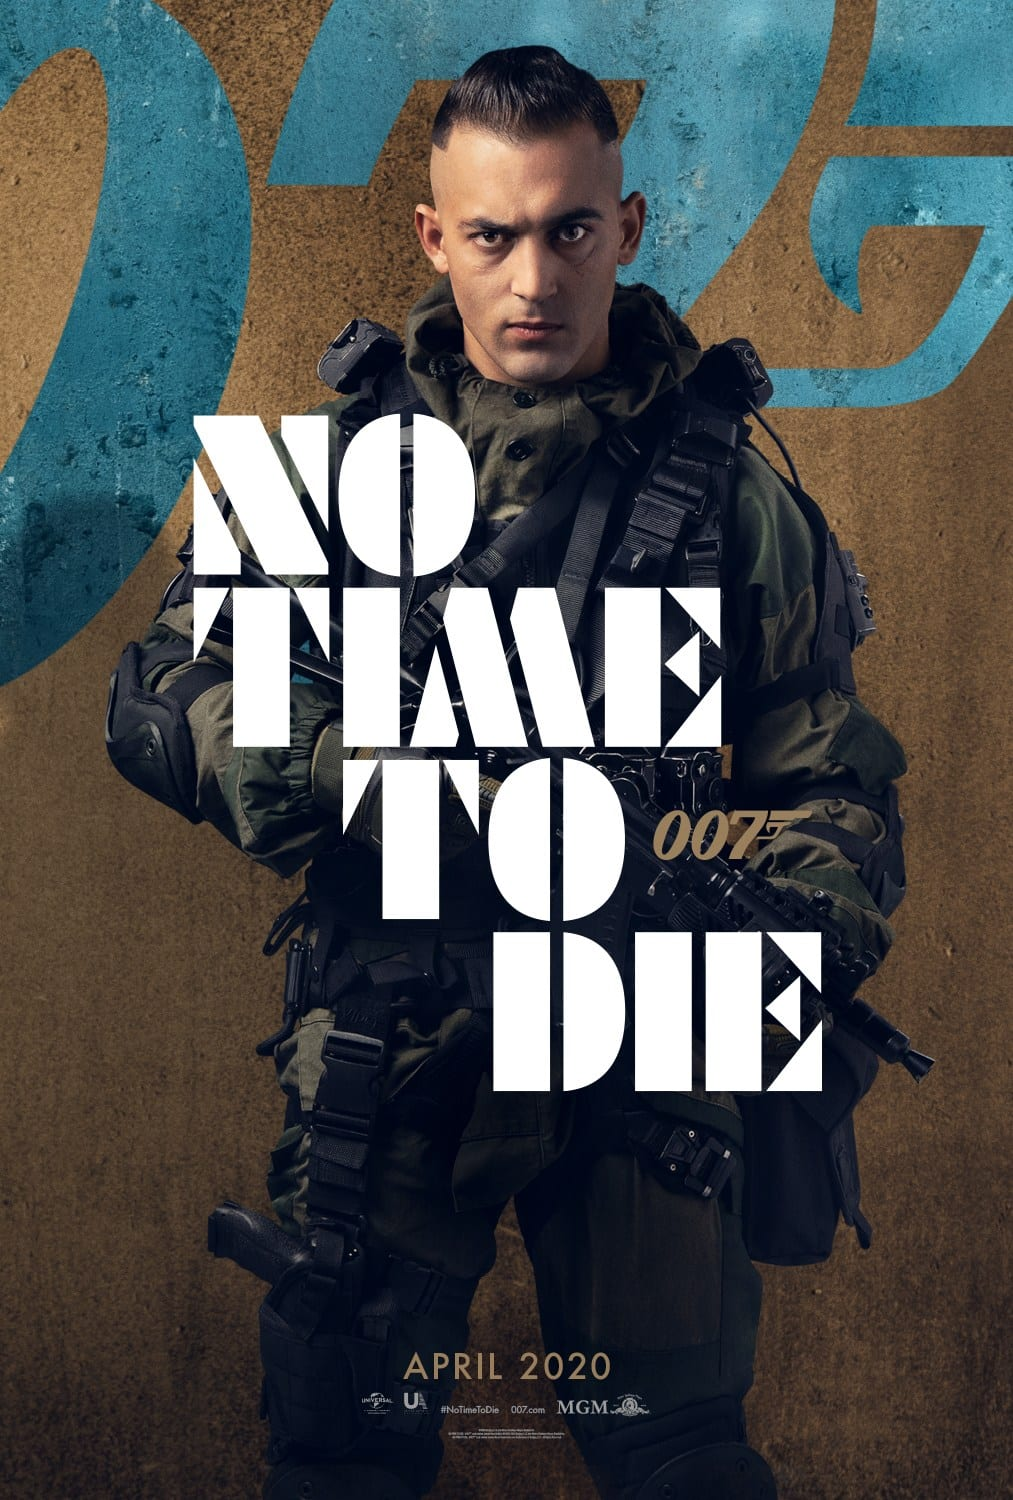 007 No Time To Die Bond 25 Character Posters Dali Benssalah as Primo